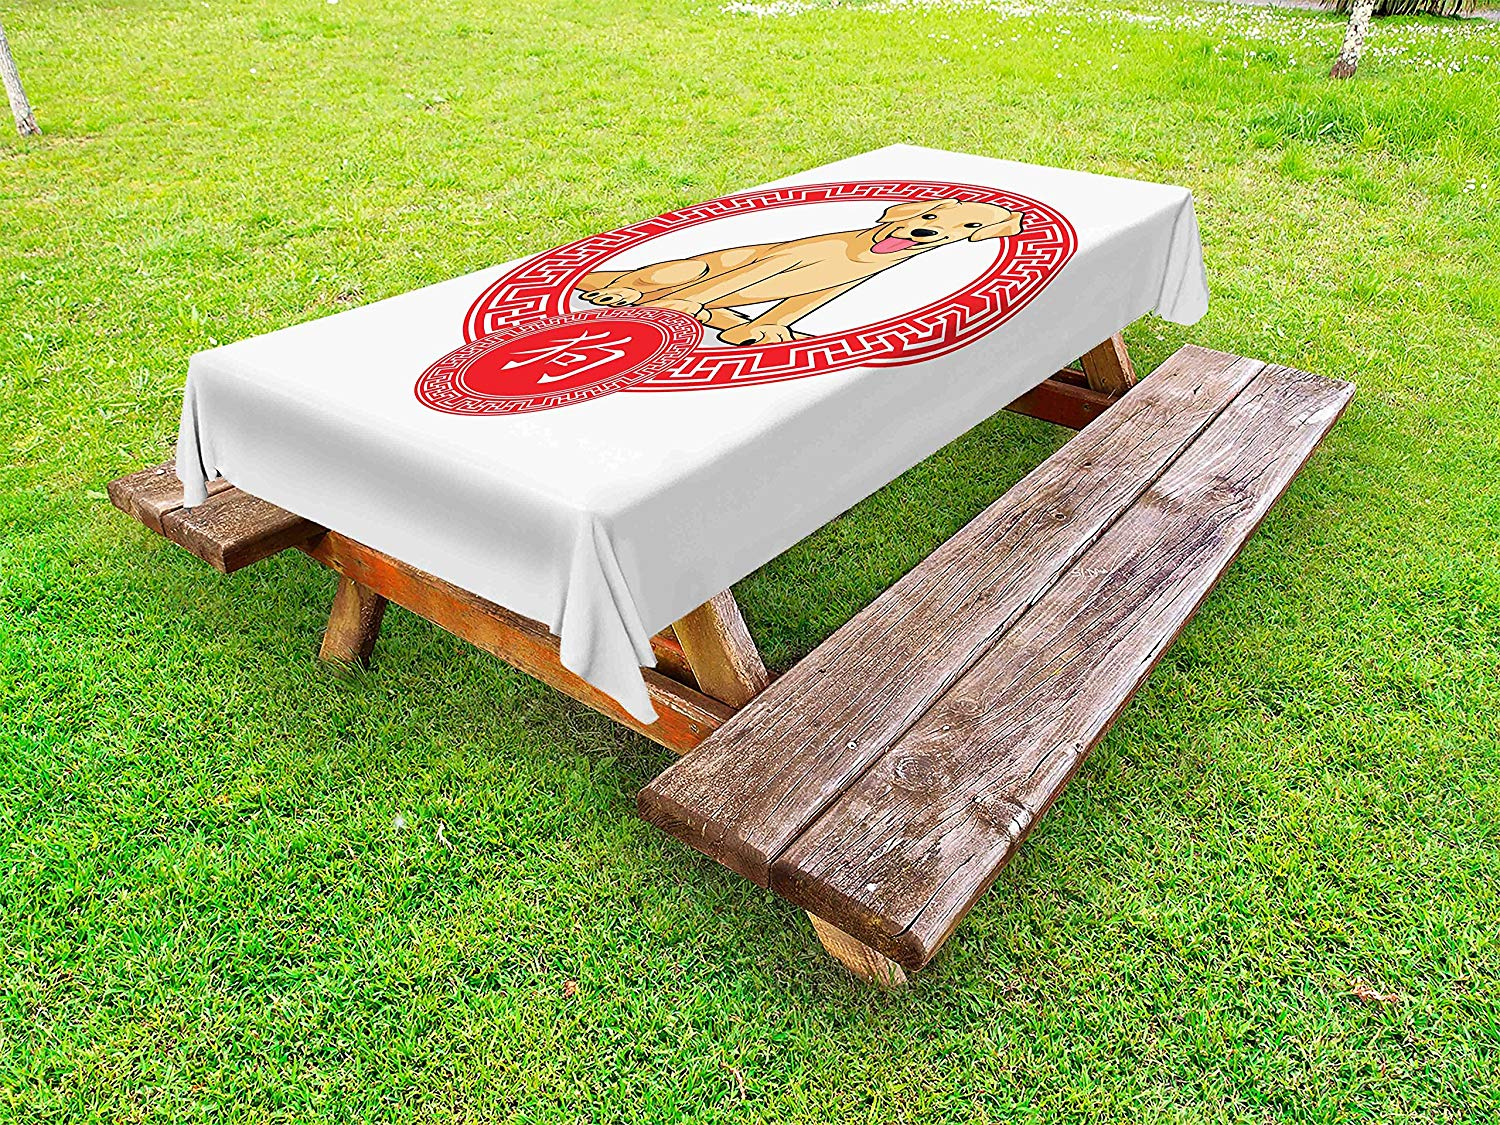 Ambesonne Year of the Dog Outdoor Tablecloth, Chinese Zodiac Animal Traditional Geometric Shapes Lunar Year, Decorative Washable Picnic Table Cloth, 58 X 84 Inches, Pale Brown and Vermilion